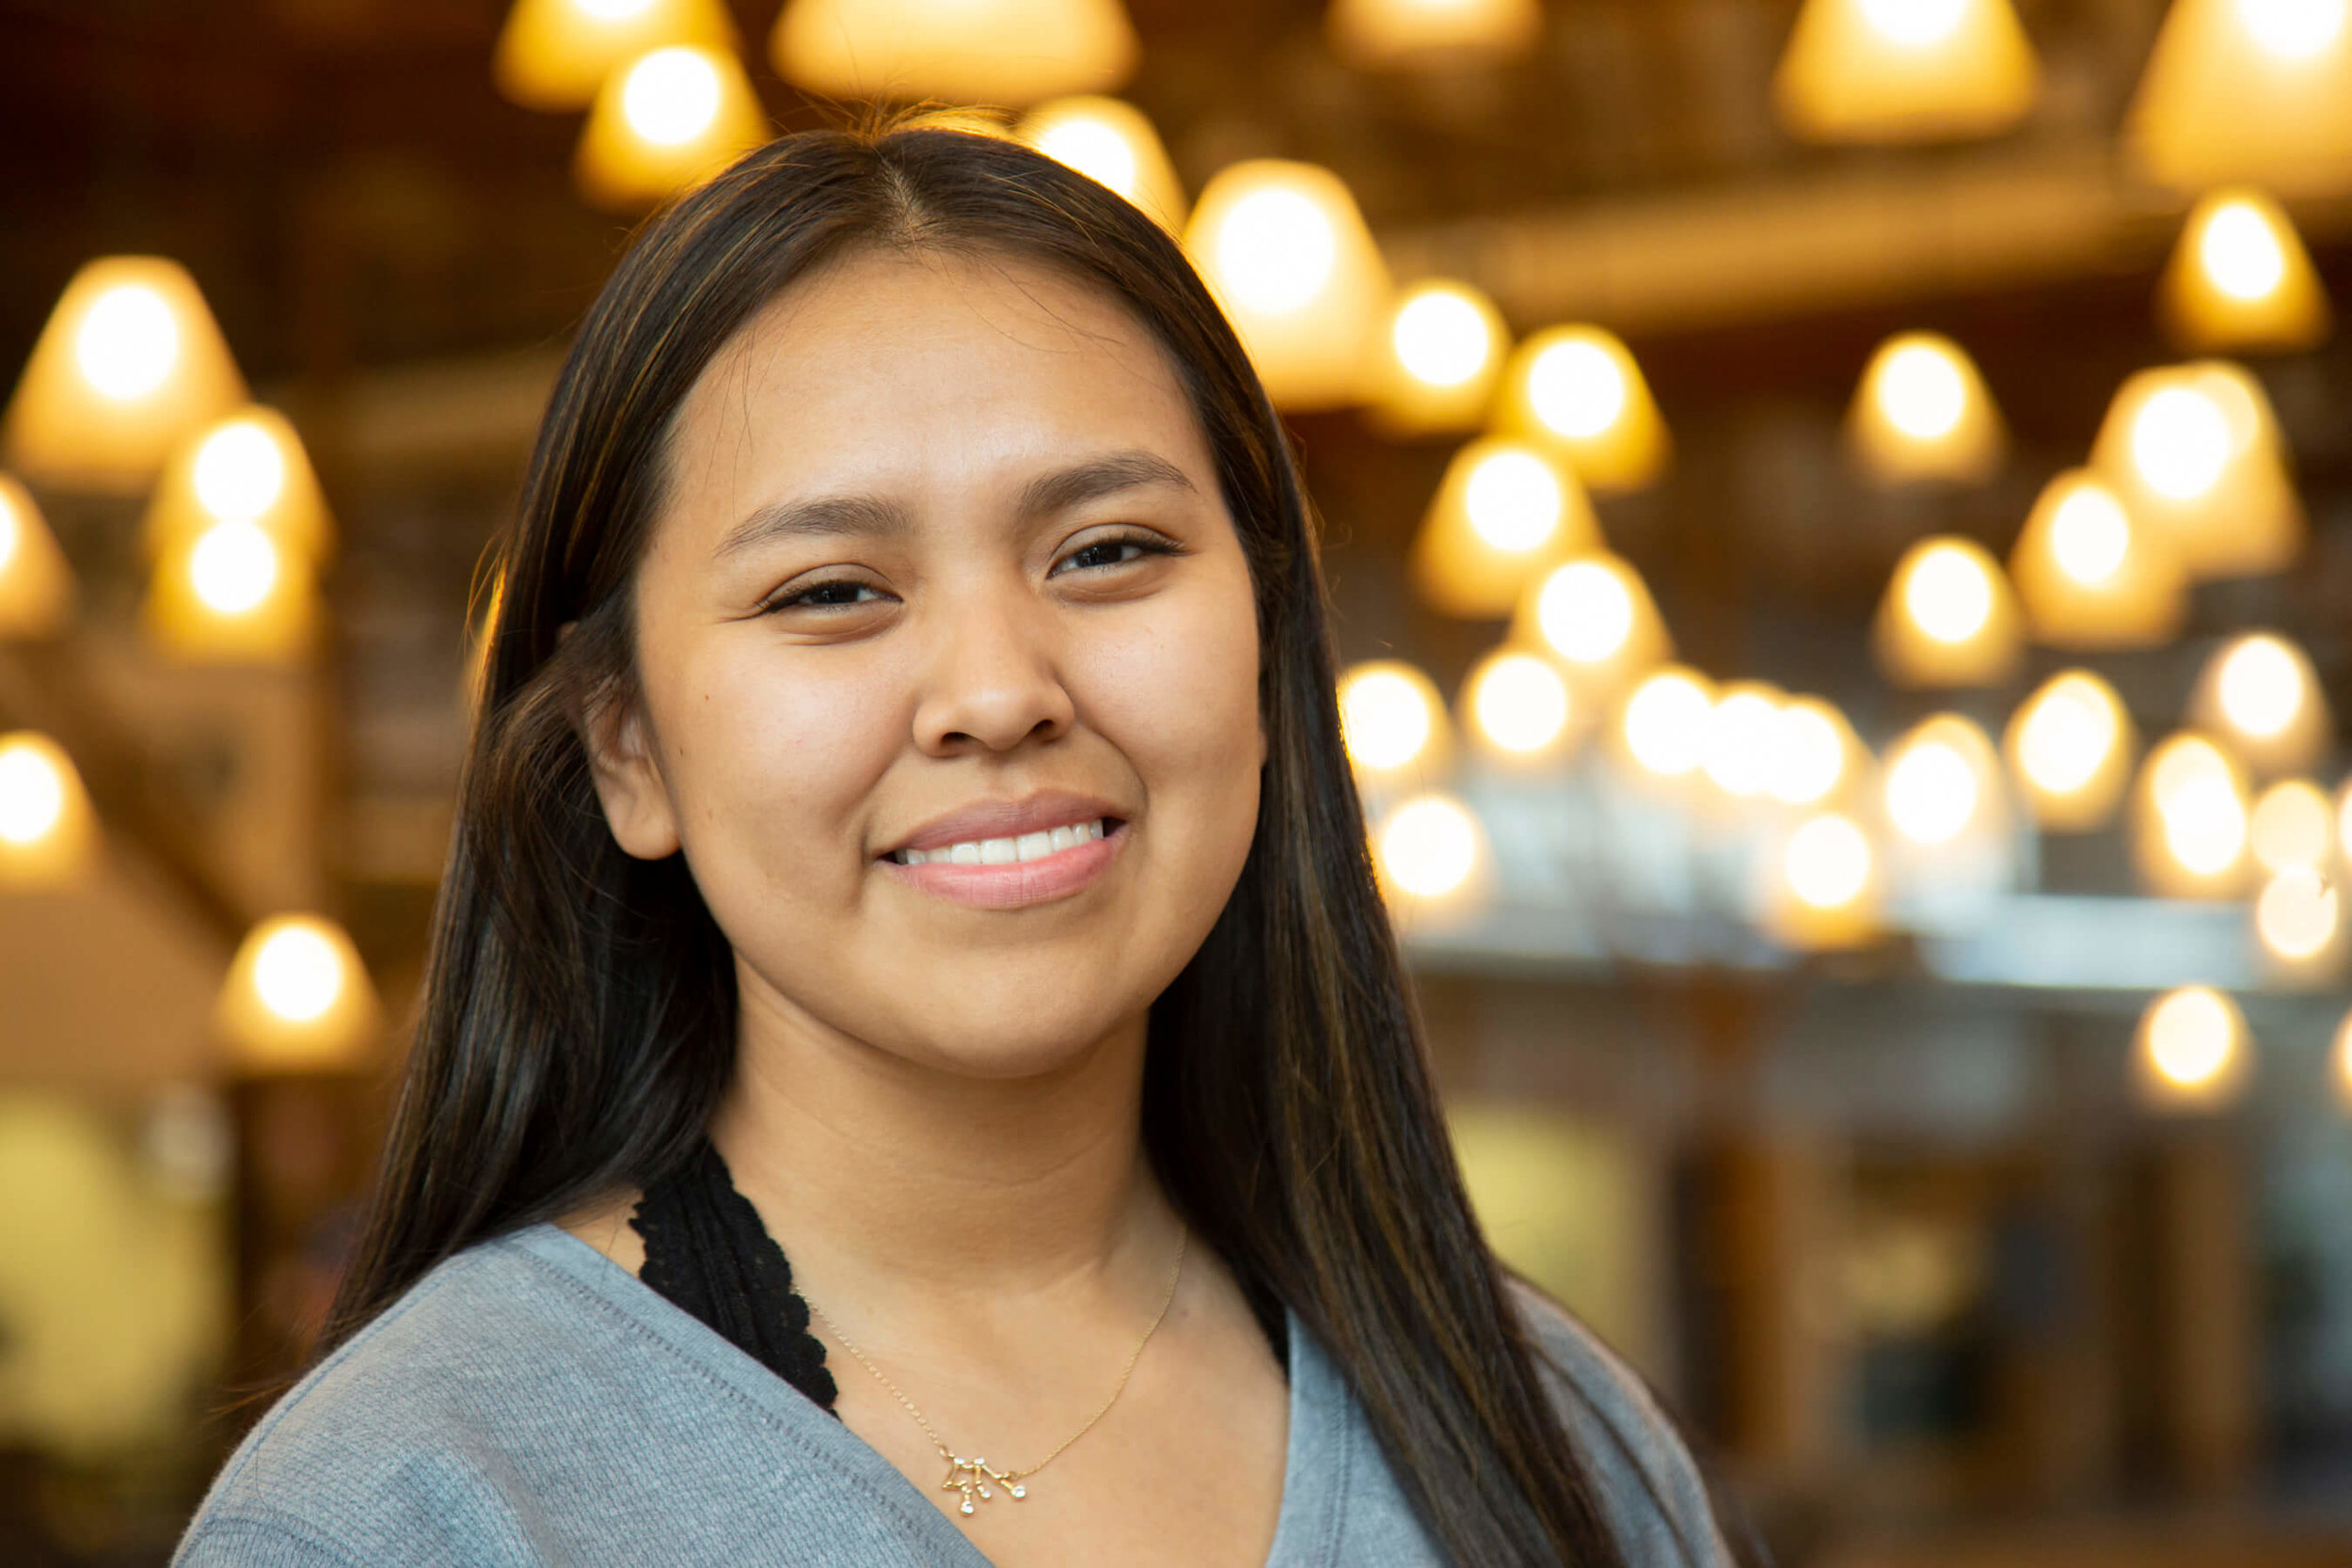 Nevaeh Nez - Flagstaff High School Senior seeking Bachelor of Science degree in Biomedical Sciences, University of Minnesota$1,000 Foundation Scholarship